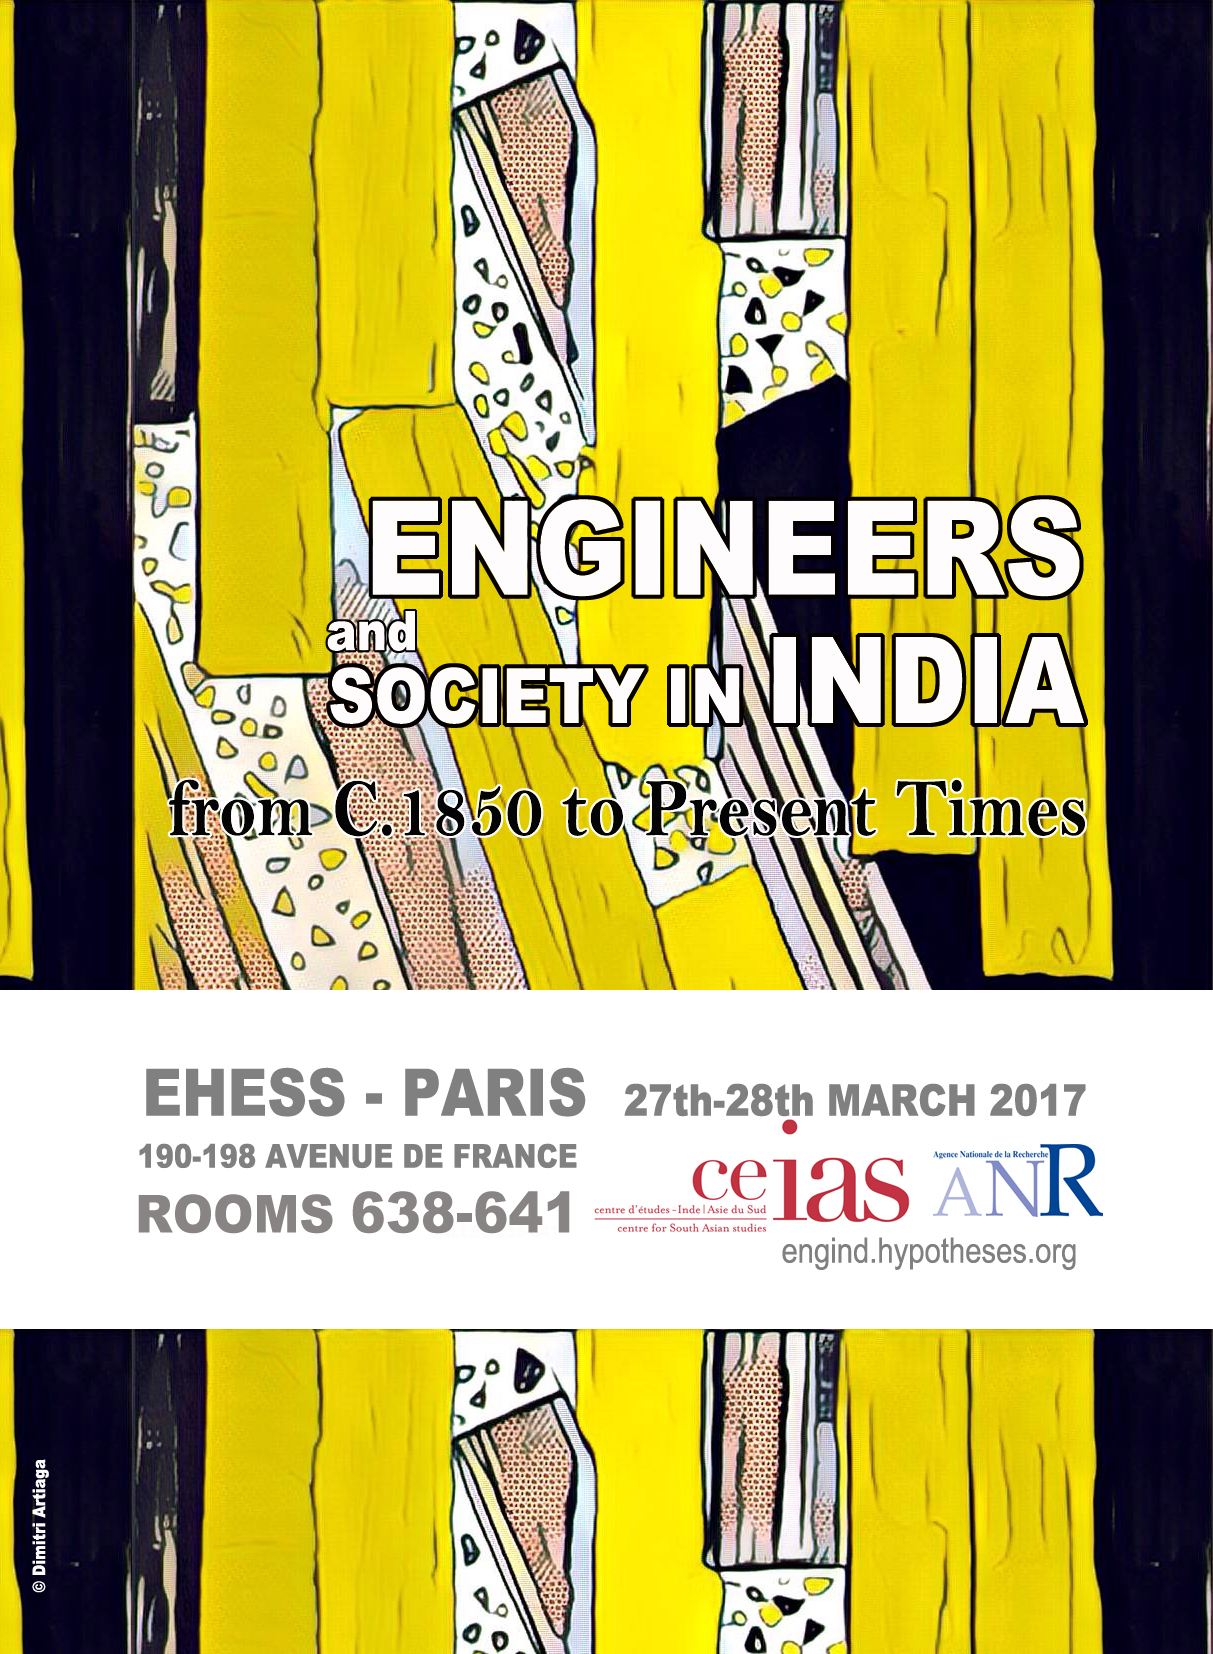 Engineers and society in India (1850 to present times)